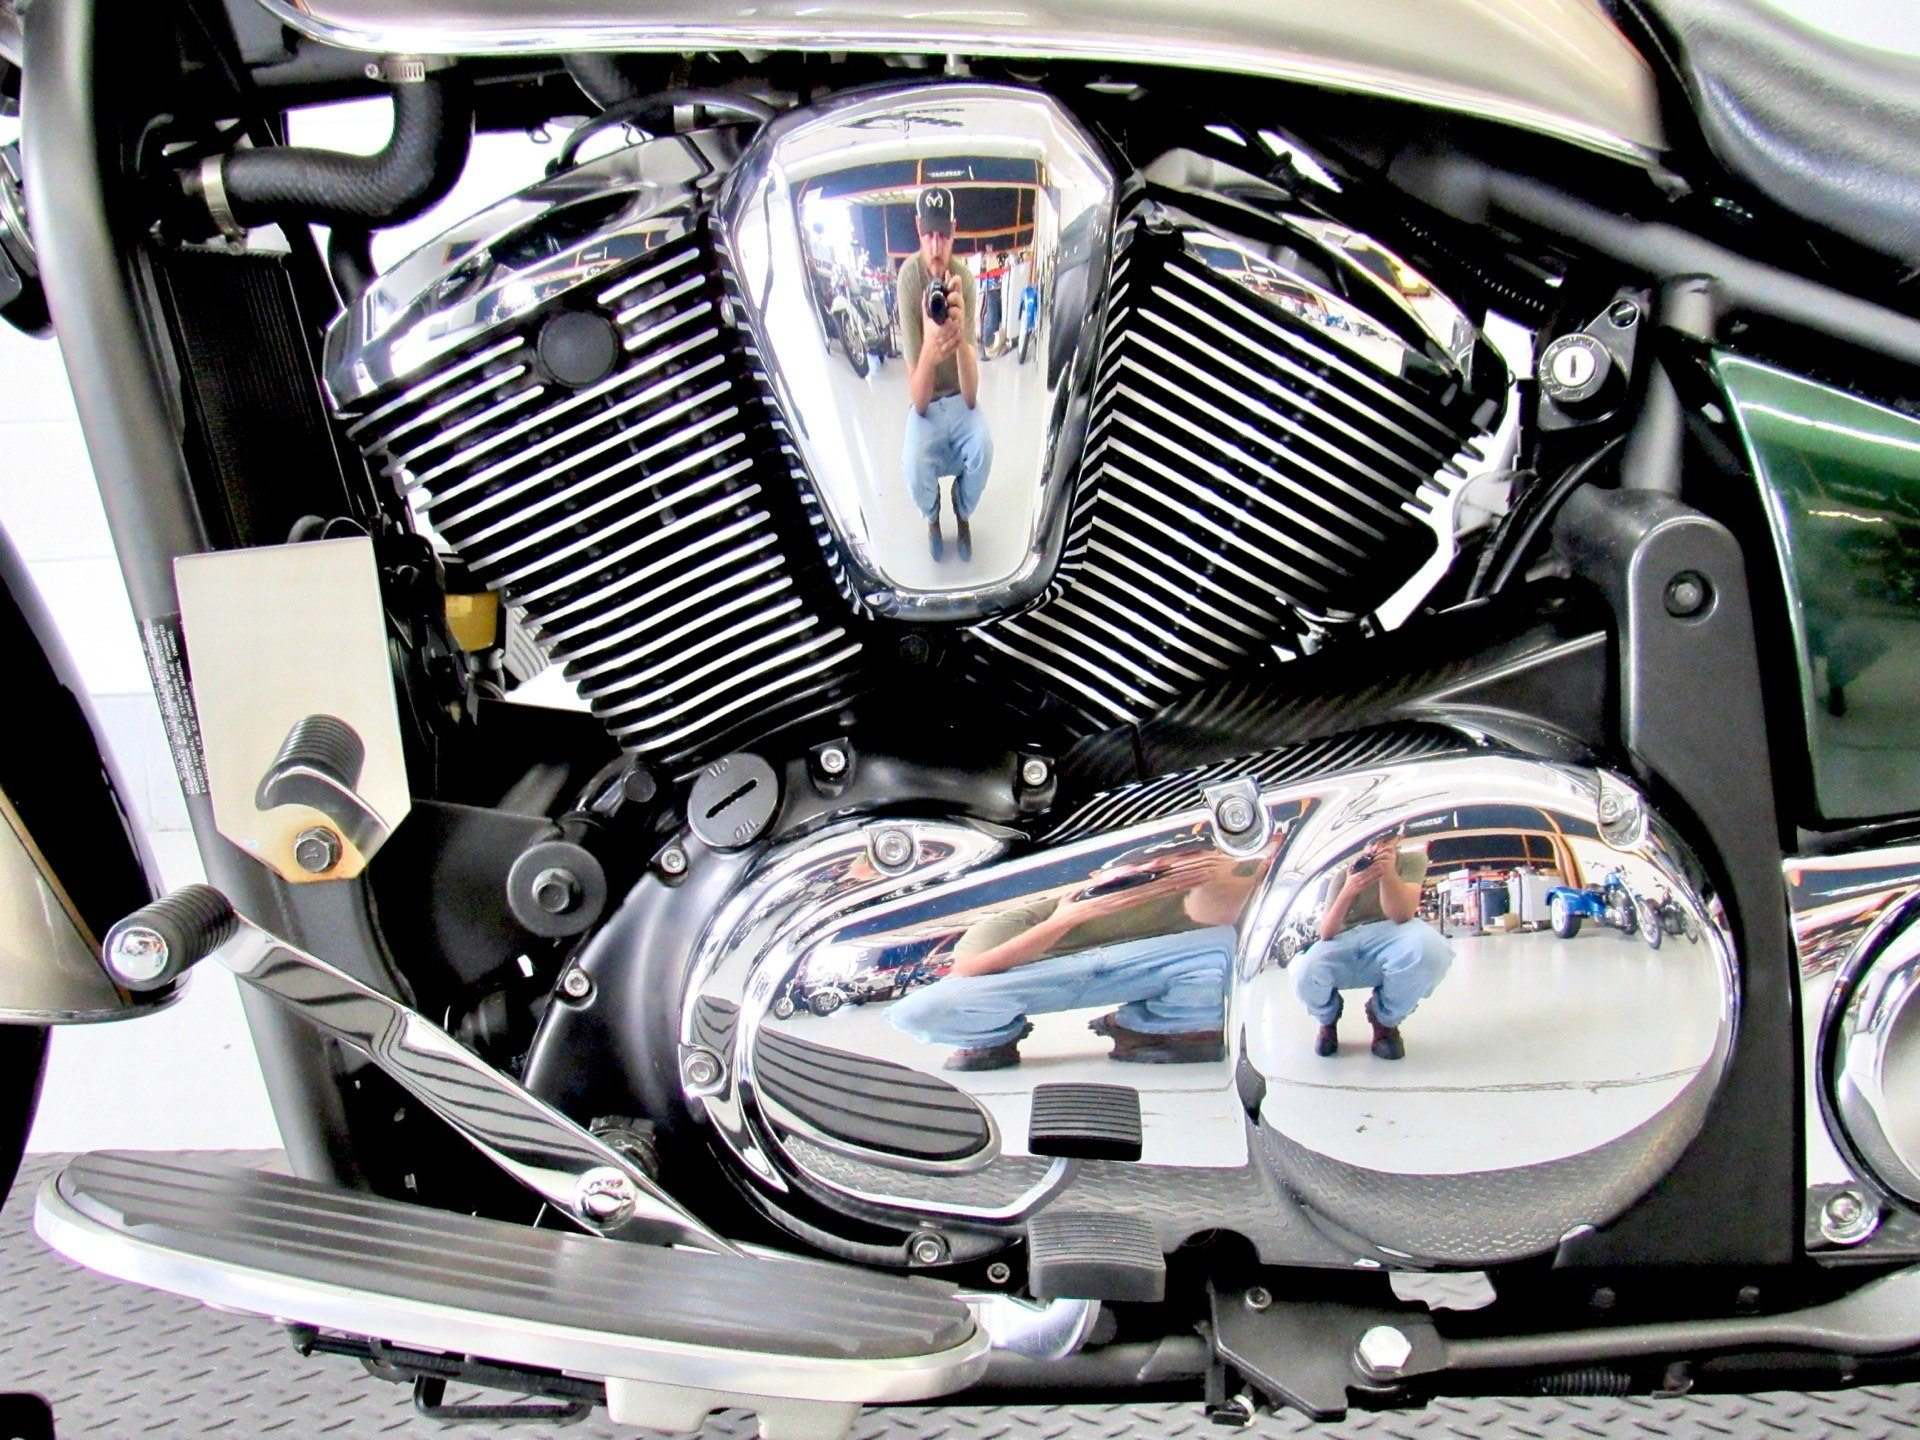 2010 Kawasaki Vulcan® 900 Classic LT in Fredericksburg, Virginia - Photo 19